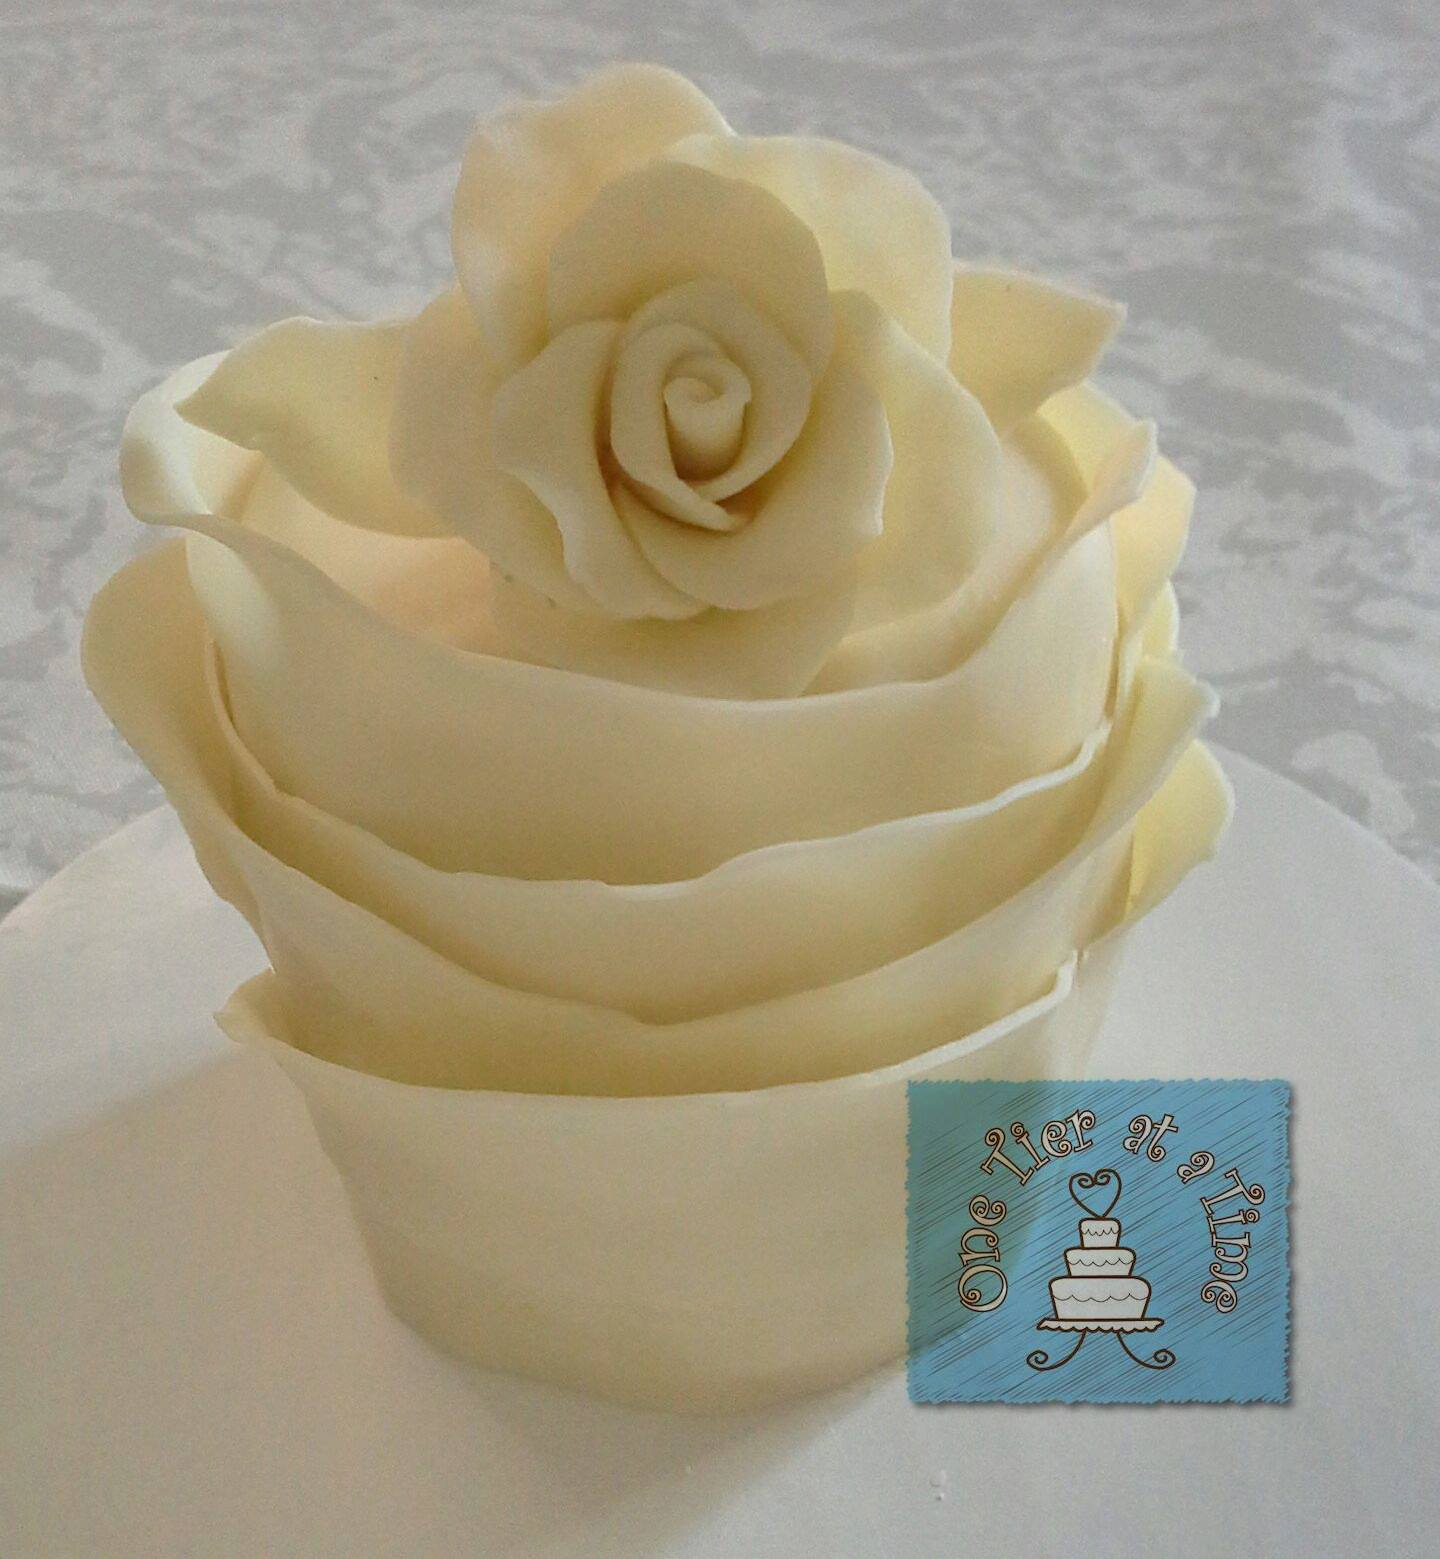 Ivory White Modelling Chocolate Rose Cake